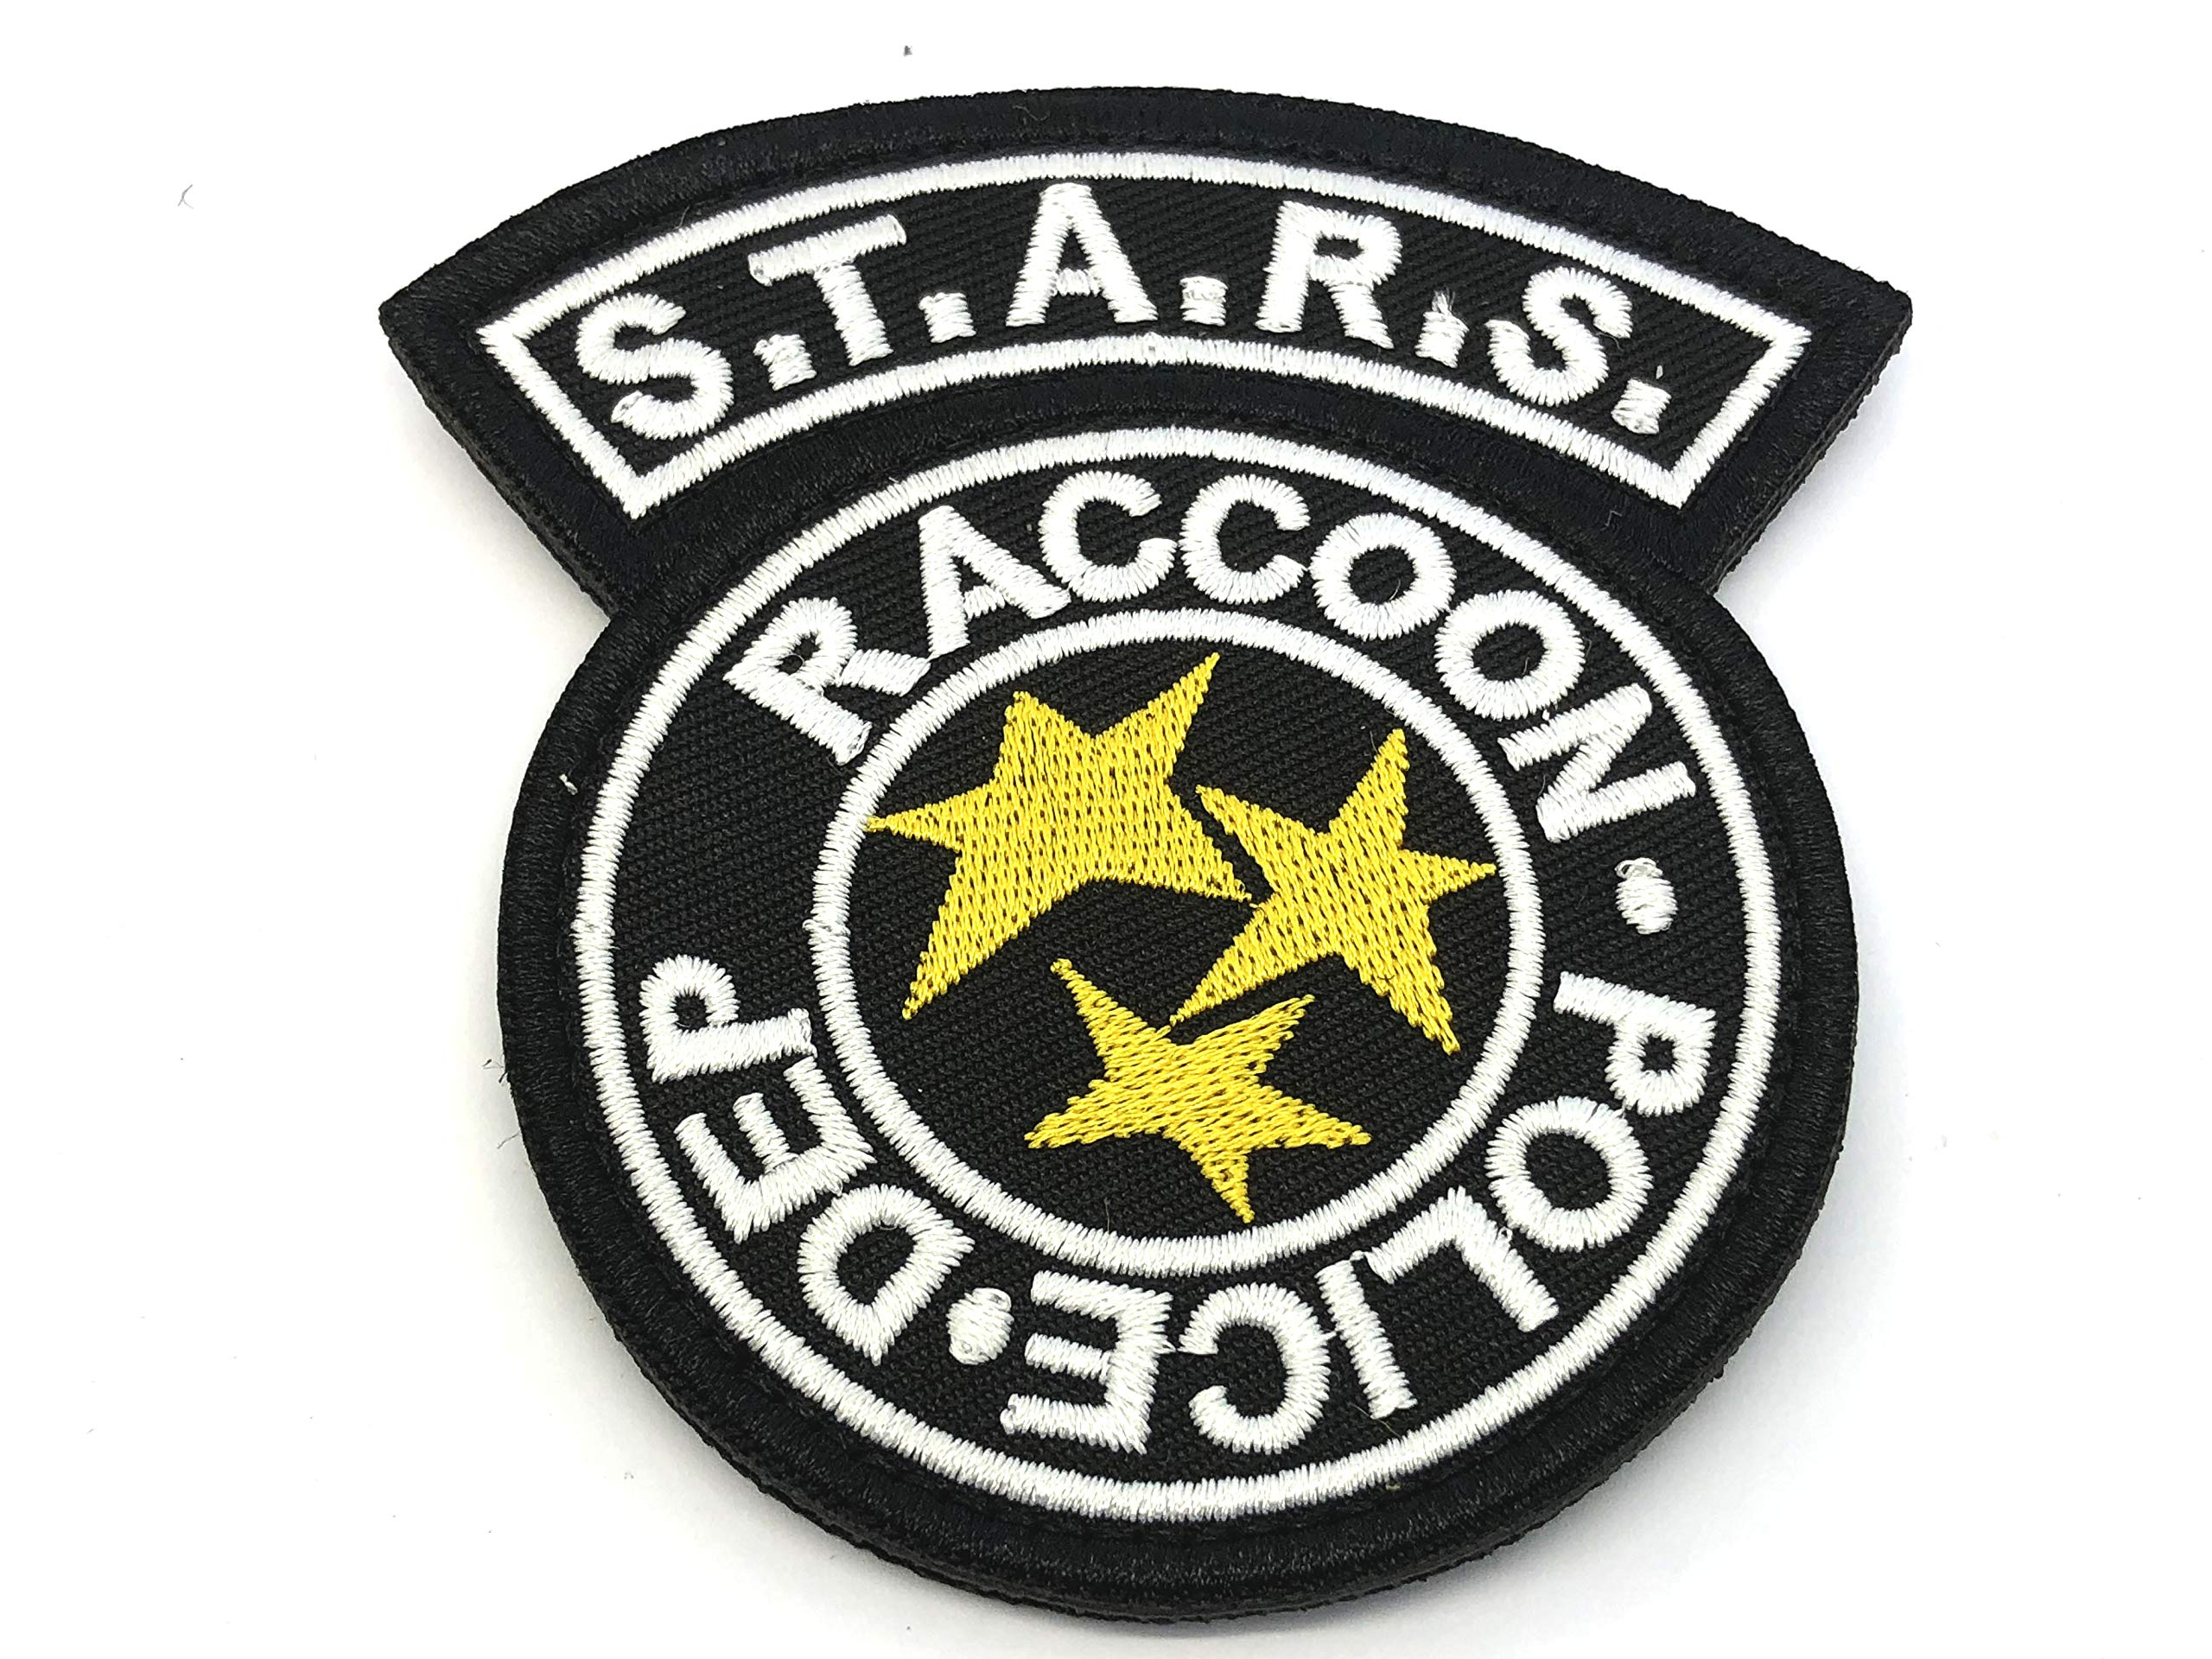 Parche Bordado de Star Racoon Police Dept Resident Evil para Airsoft, Paintball, Cosplay, Color Negro, tamaño 90mm x 90mm: Amazon.es: Deportes y aire libre